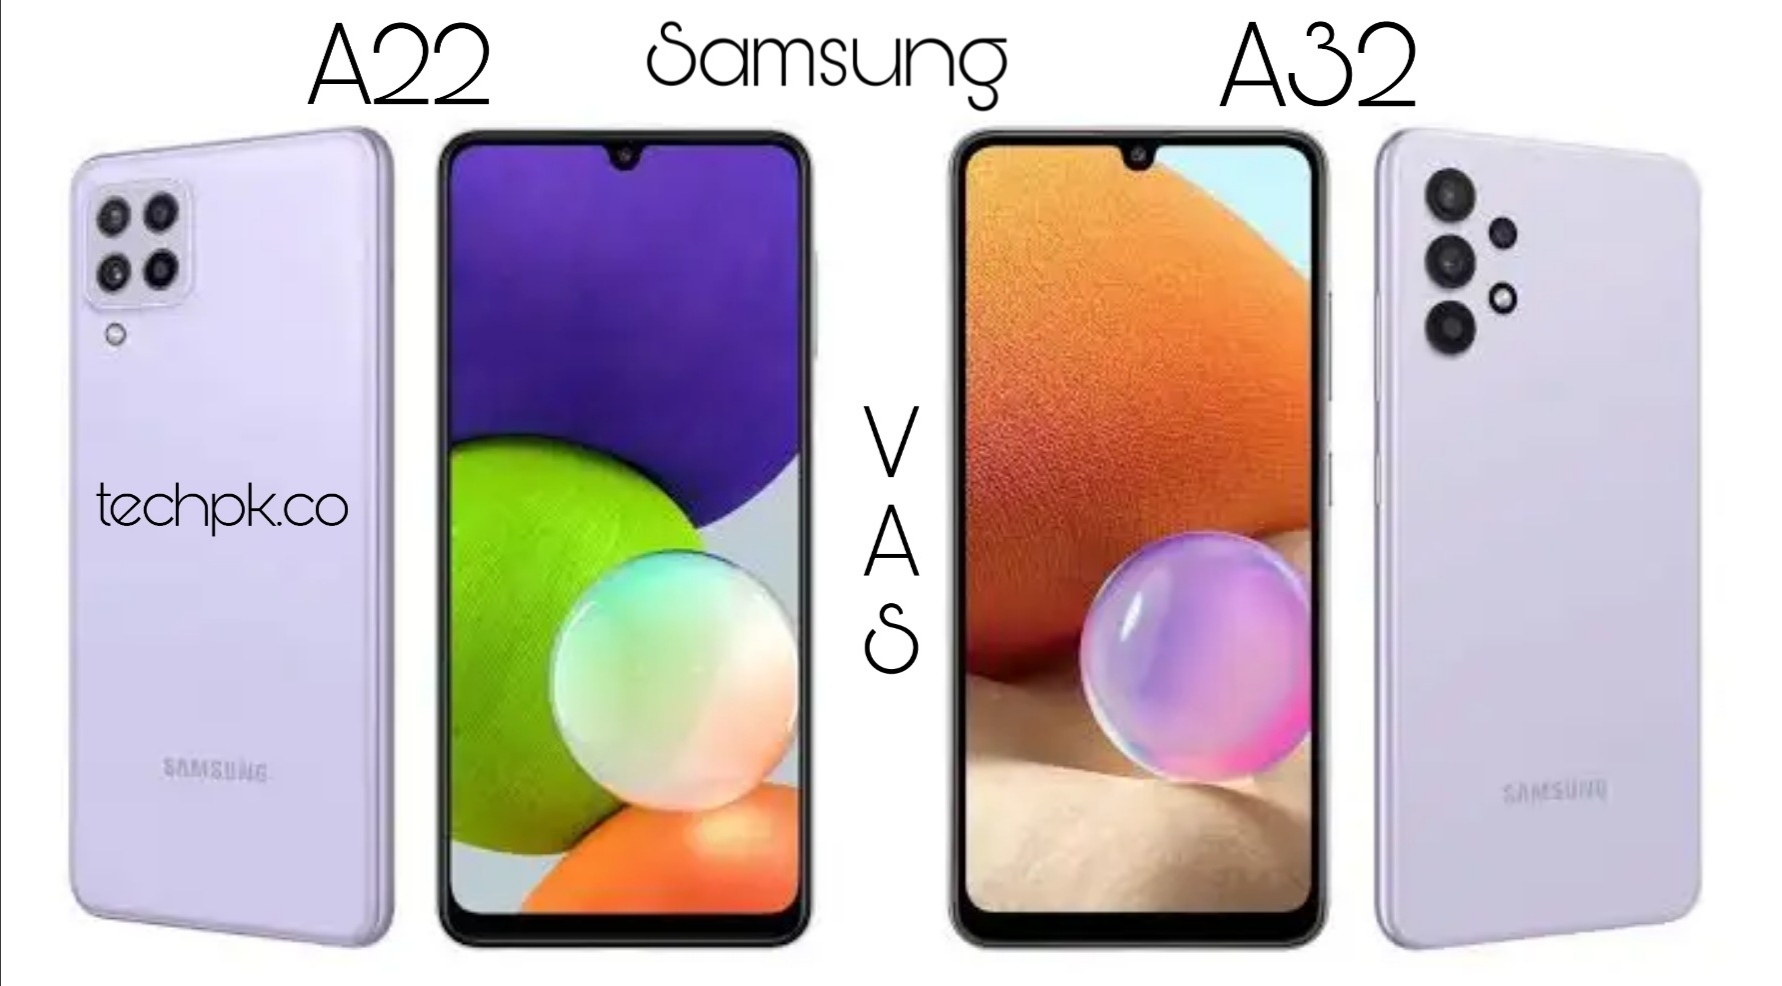 5 Differences between Samsung Galaxy A22 and Samsung Galaxy A32